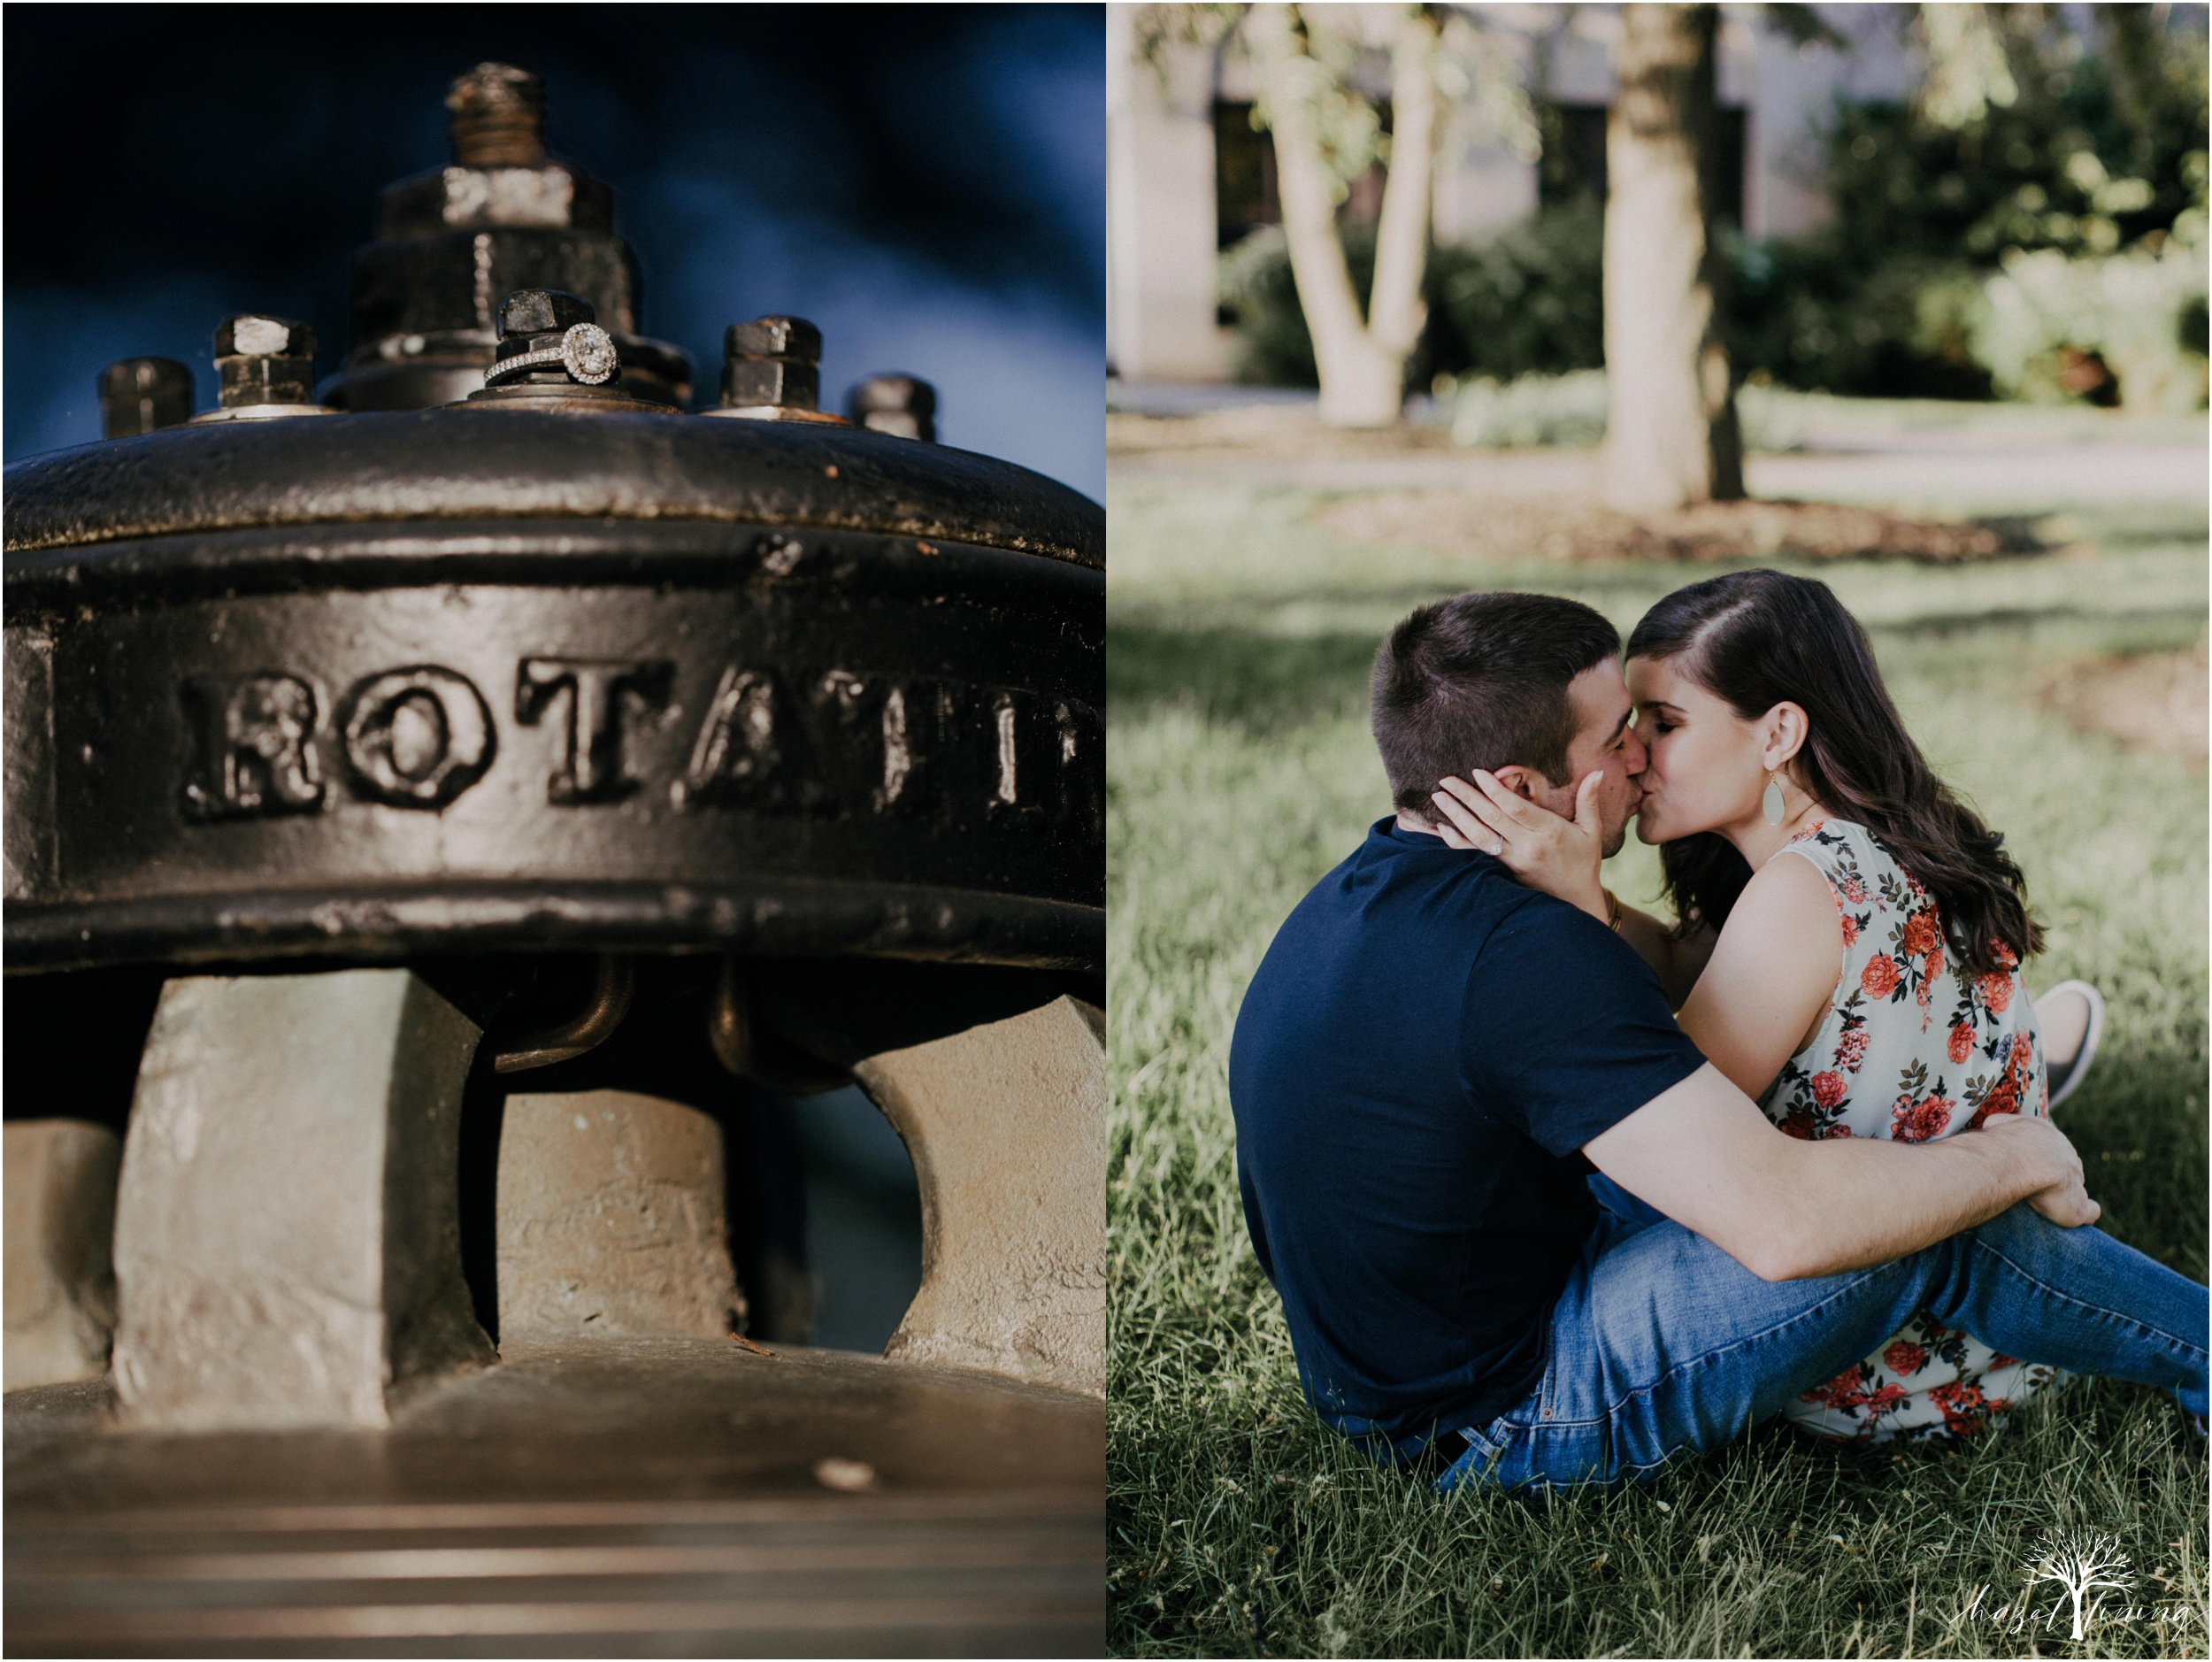 ellyn-jack-kutztown-university-of-pennsylvania-engagement-session-hazel-lining-photography-destination-elopement-wedding-engagement-photography_0245.jpg